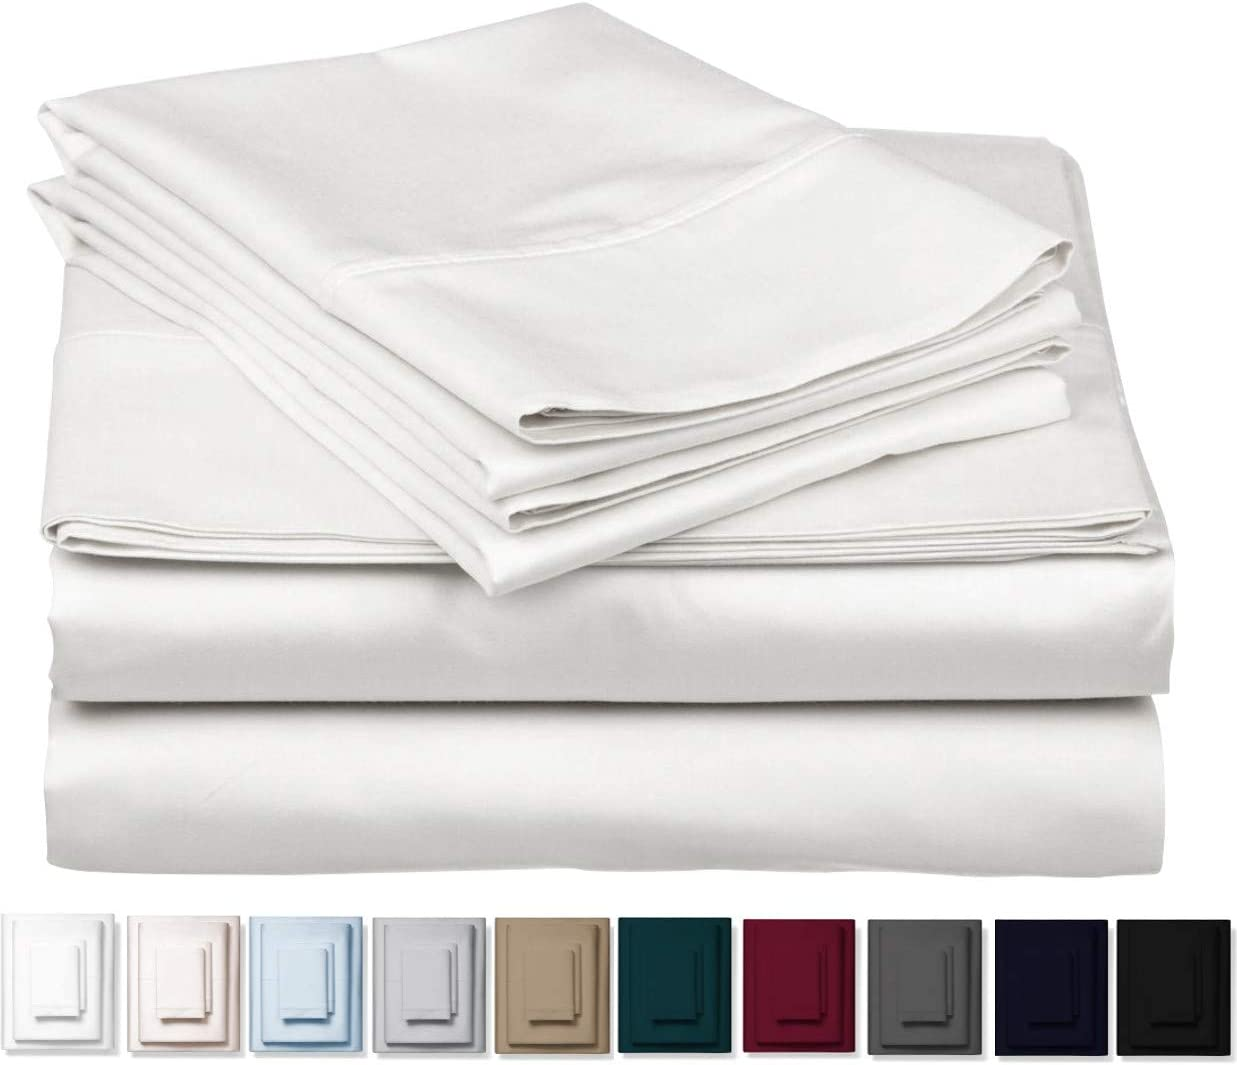 1000-Thread-Count 100% Cotton Sheet Pure White Queen-Sheets Set, 4-Pc Long-Staple Combed Cotton Best-Bedding Sheets For Bed, Breathable, Soft & Silky Sateen Weave Fits Mattress Upto 18'' Deep Pocket